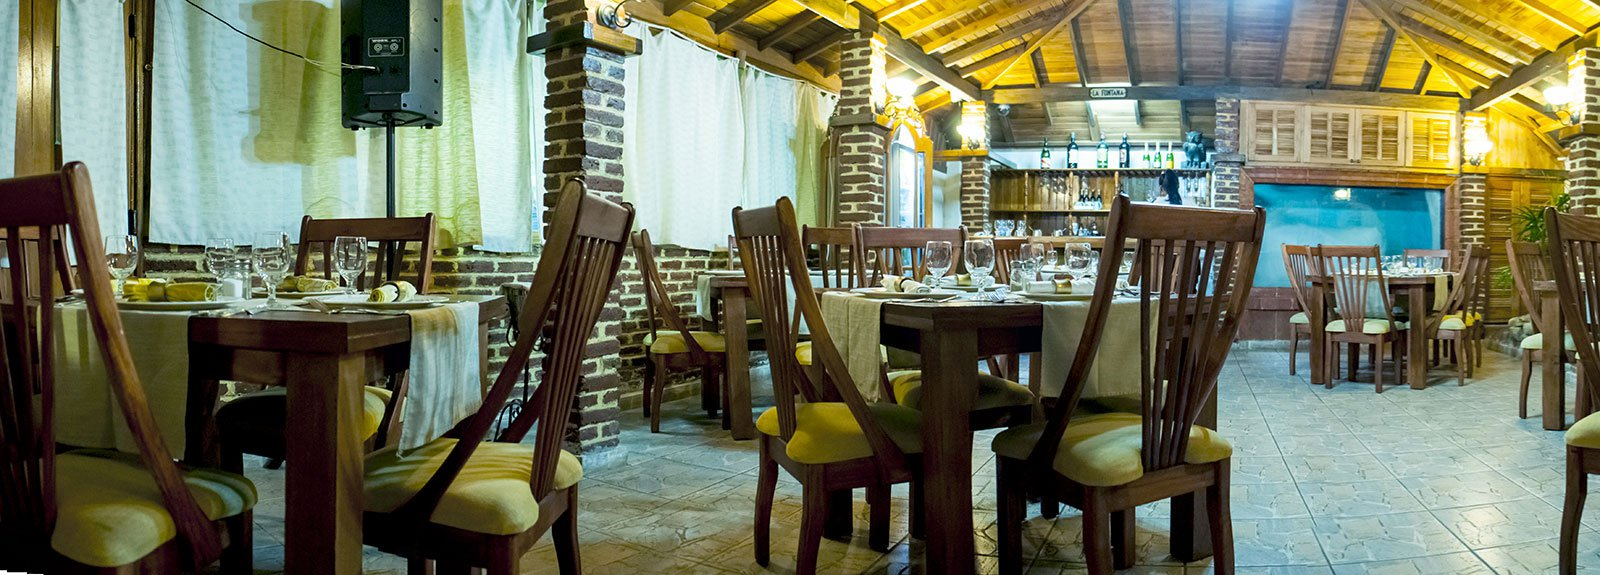 Fontana restaurant in Miramar outdoor with stone decoration and plants and blue lights